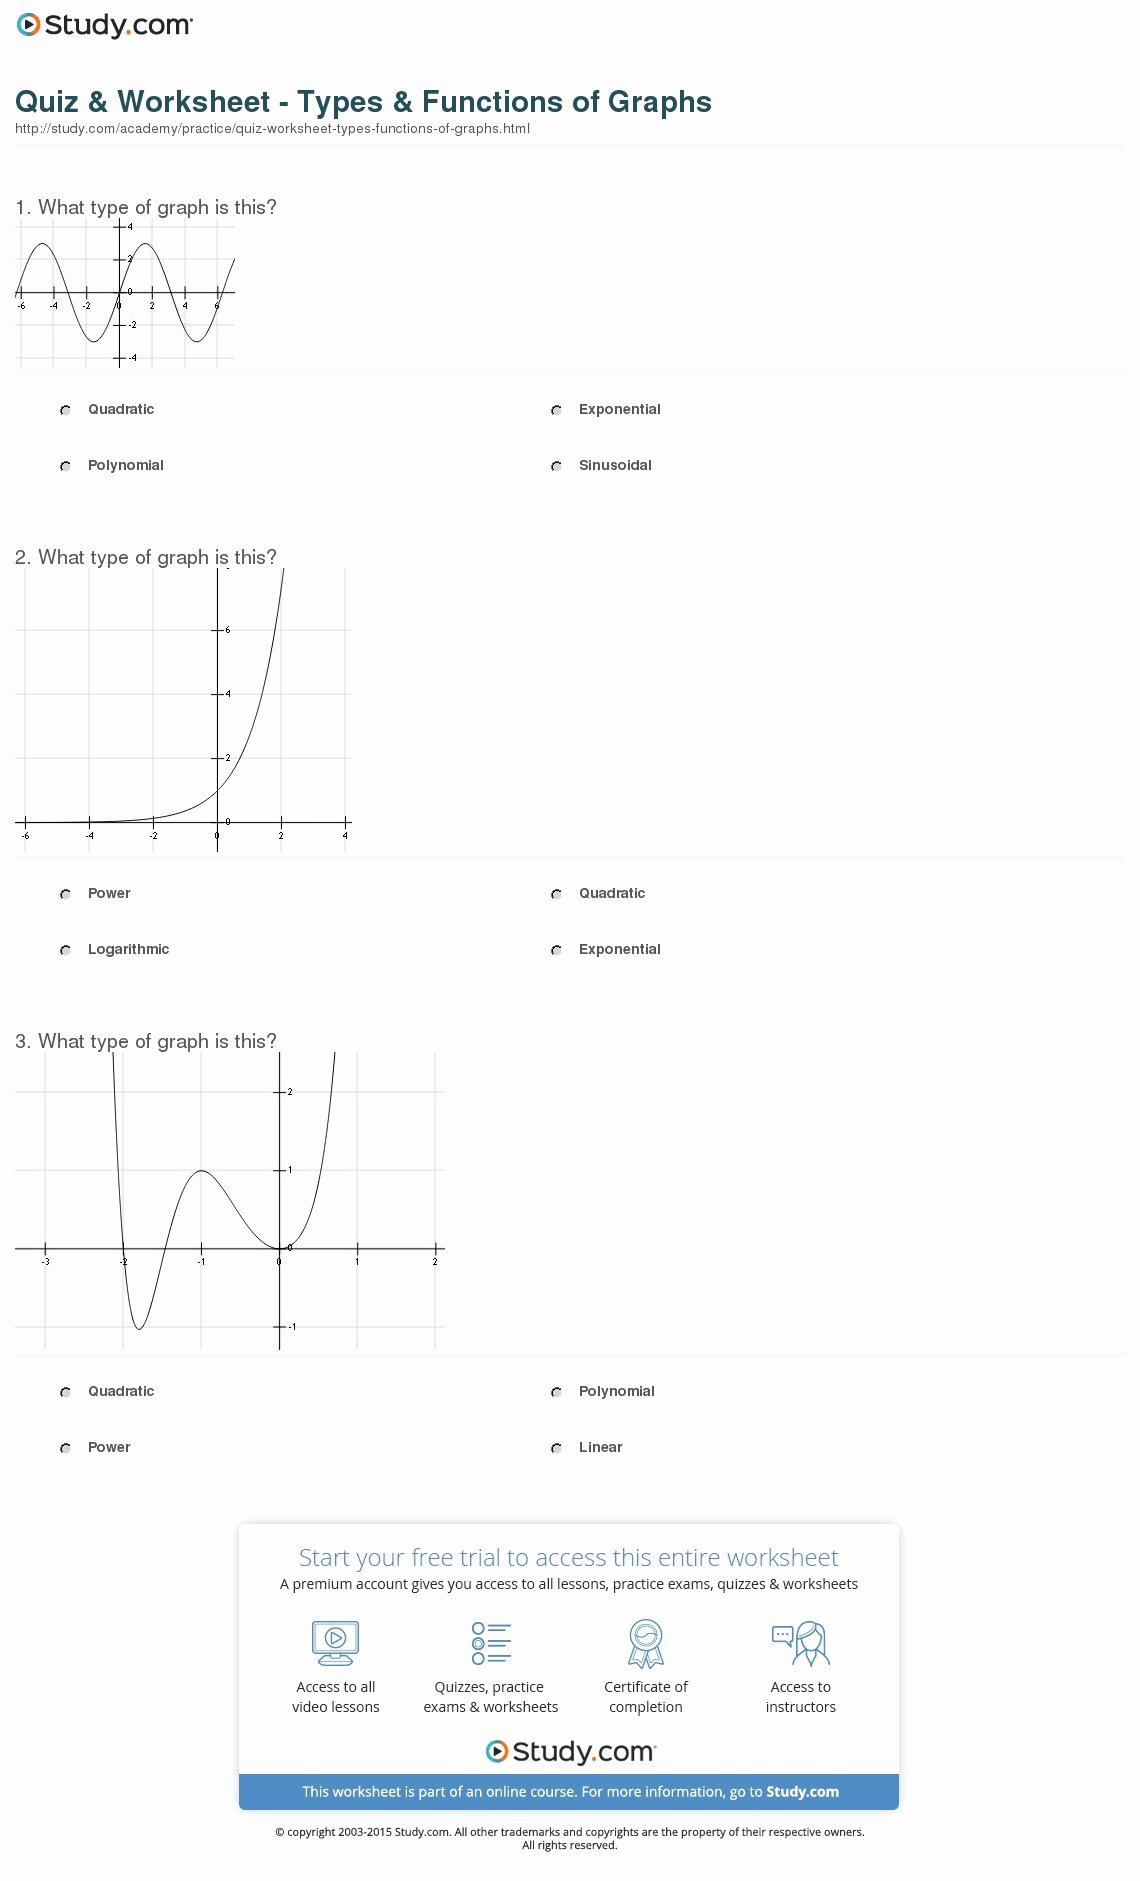 Graphing Polynomial Functions Worksheet Answers Awesome Quiz & Worksheet Types & Functions Of Graphs